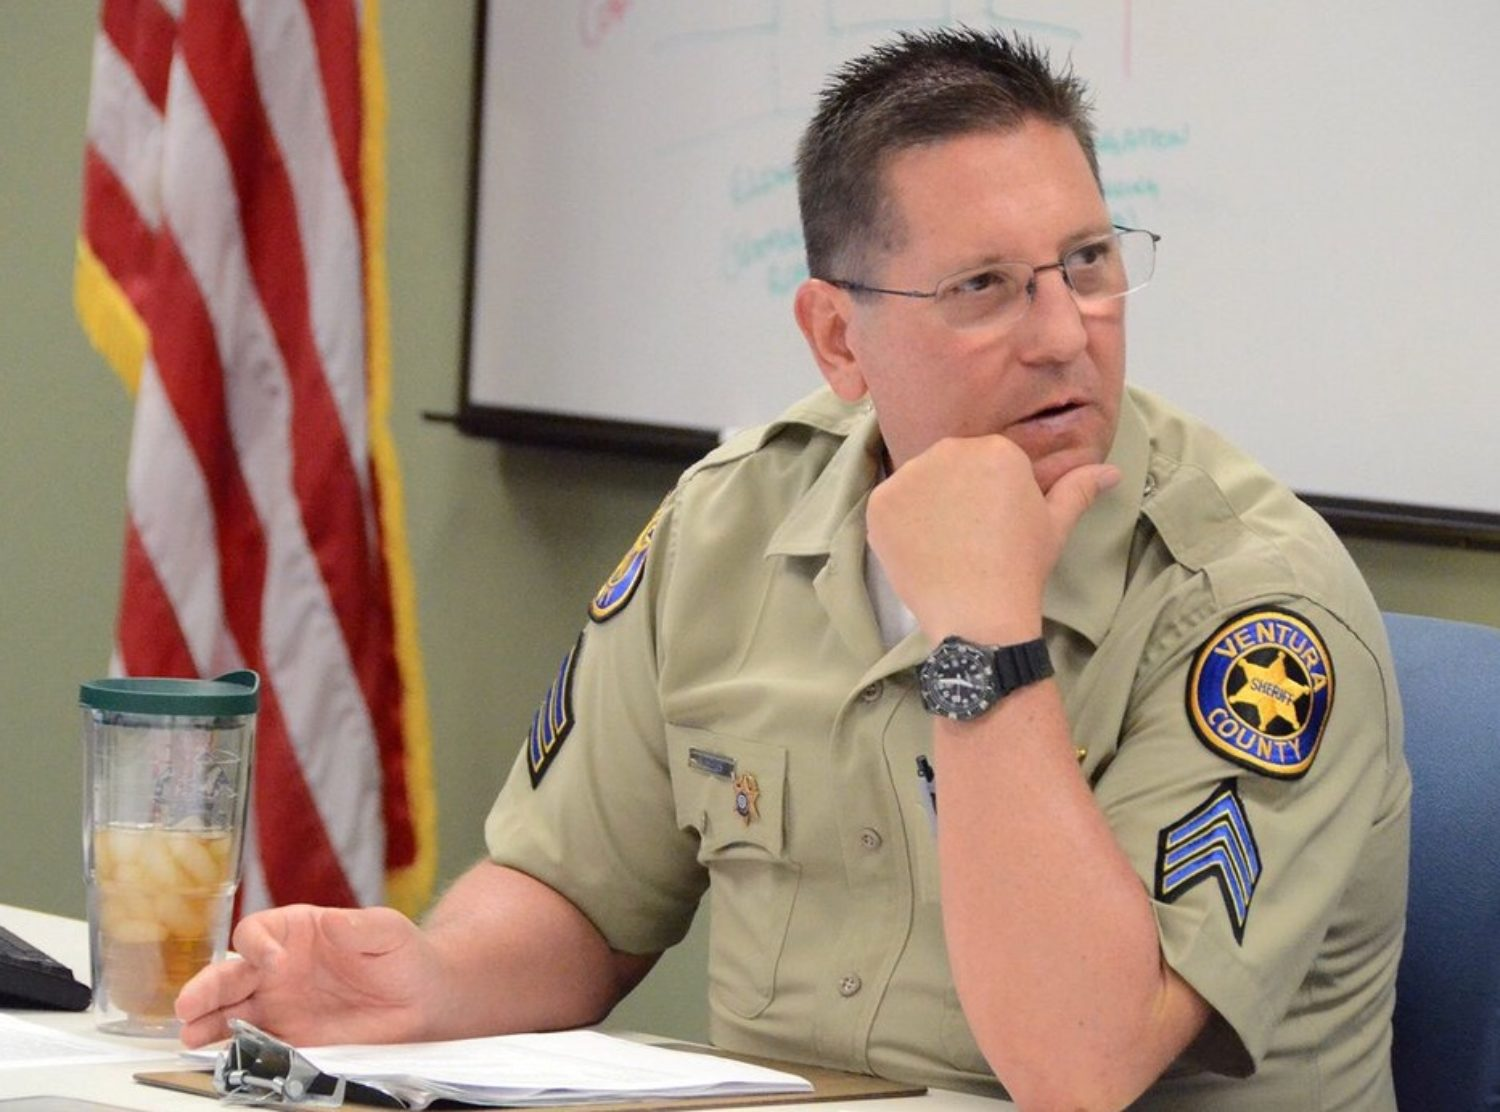 Sheriff's deputy Sergeant Ron Helus, killed when a gunman opened fire at a crowded popular southern California bar, in Thousand Oaks, California, U.S., is shown in this photo provided November 9, 2018. Courtesy Ventura County Sheriff's Office/Handout via REUTERS